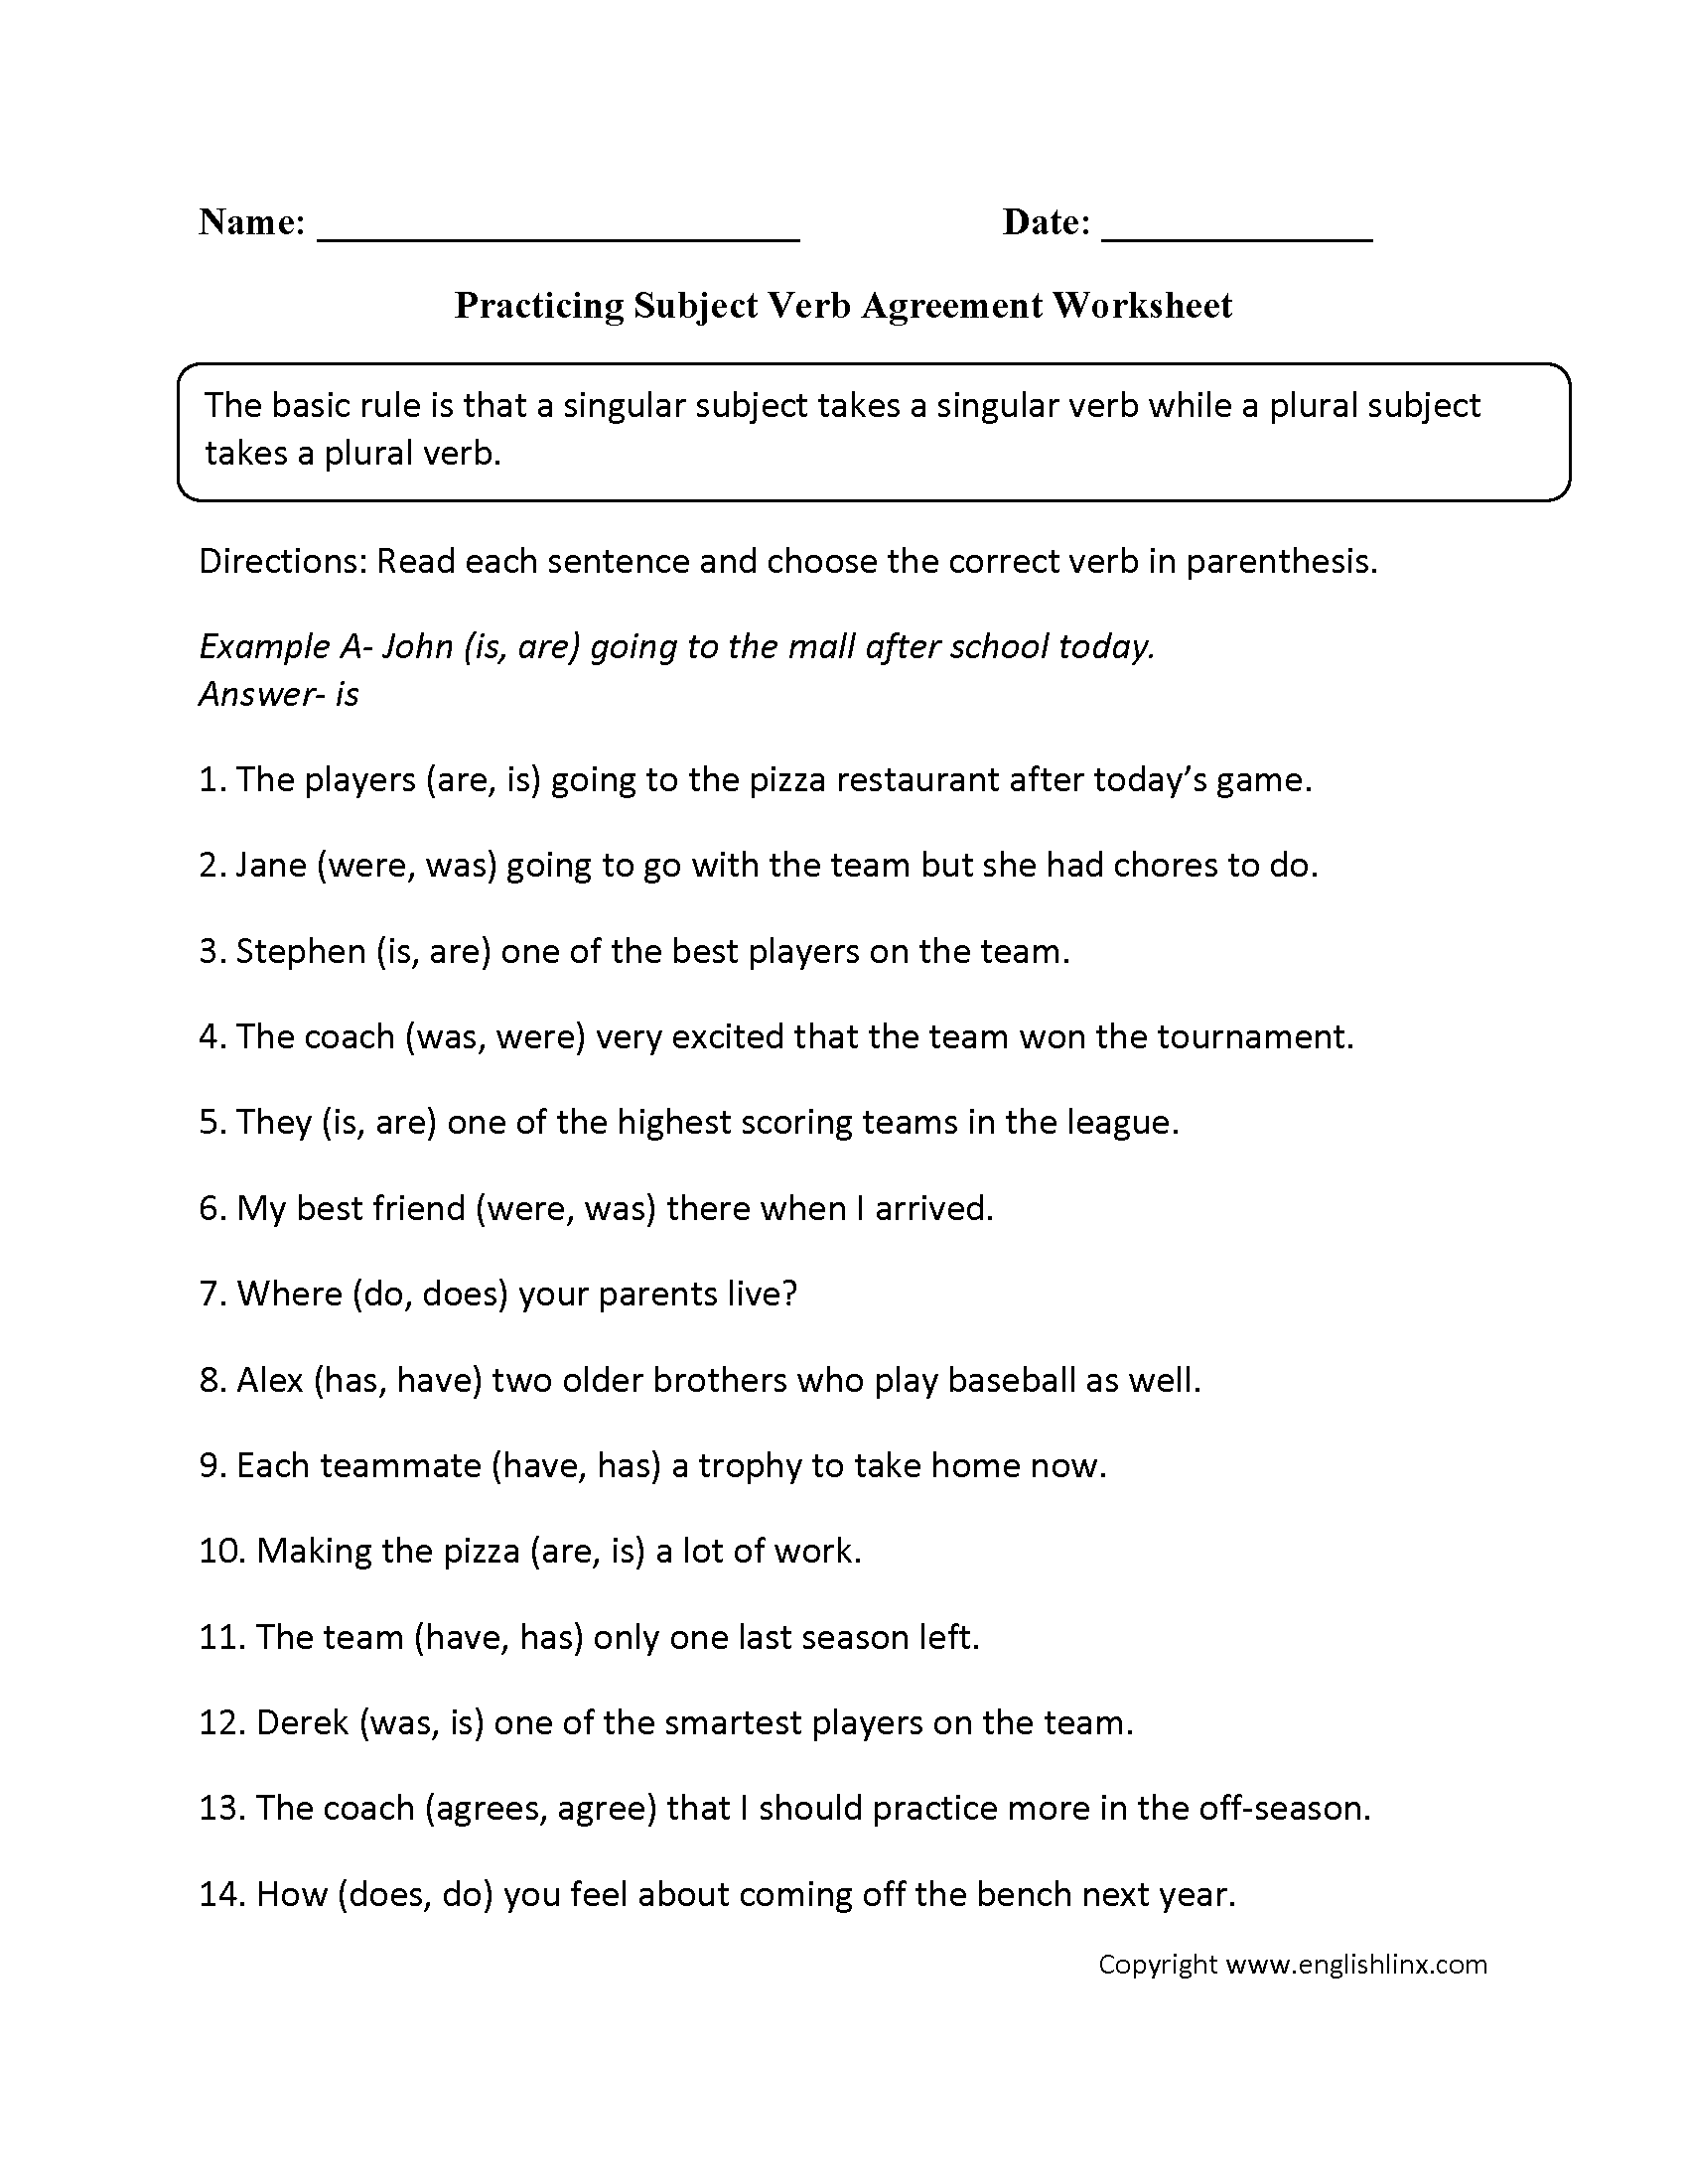 Worksheets Subject Verb Agreement Printable Worksheets subject verb agreement worksheets englishlinx com board worksheets